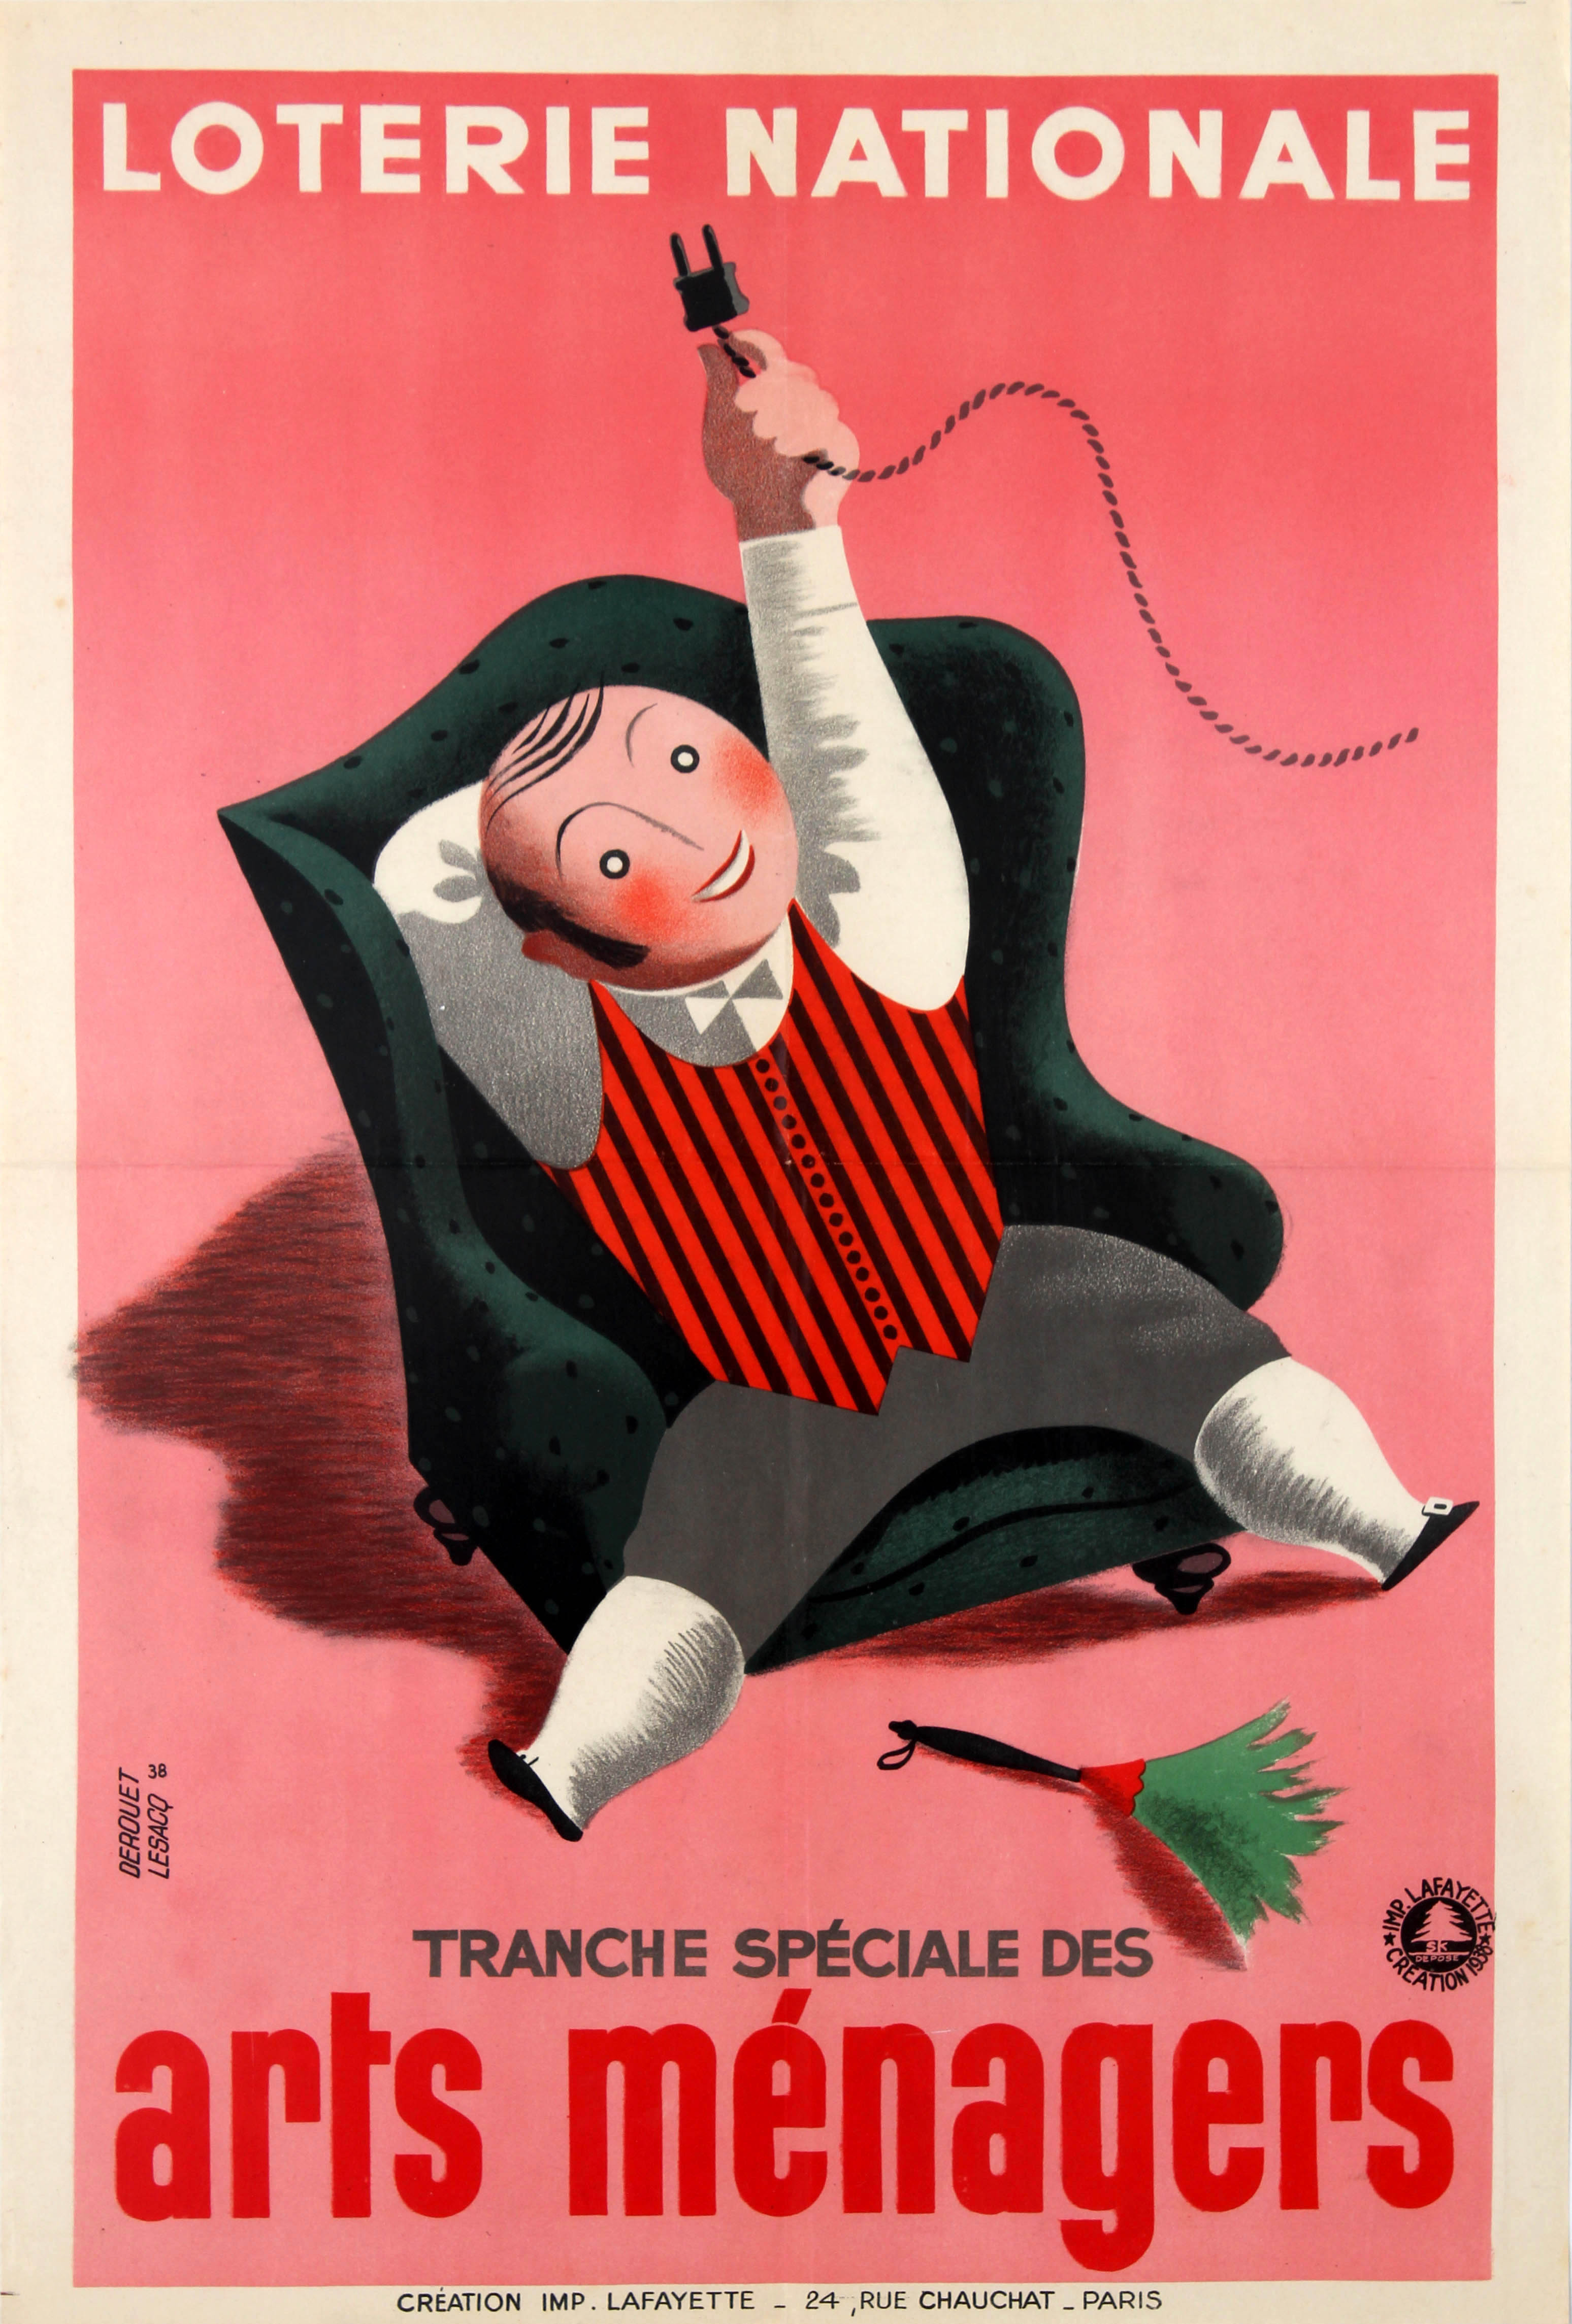 Advertising Poster Loterie Nationale Housekeeping